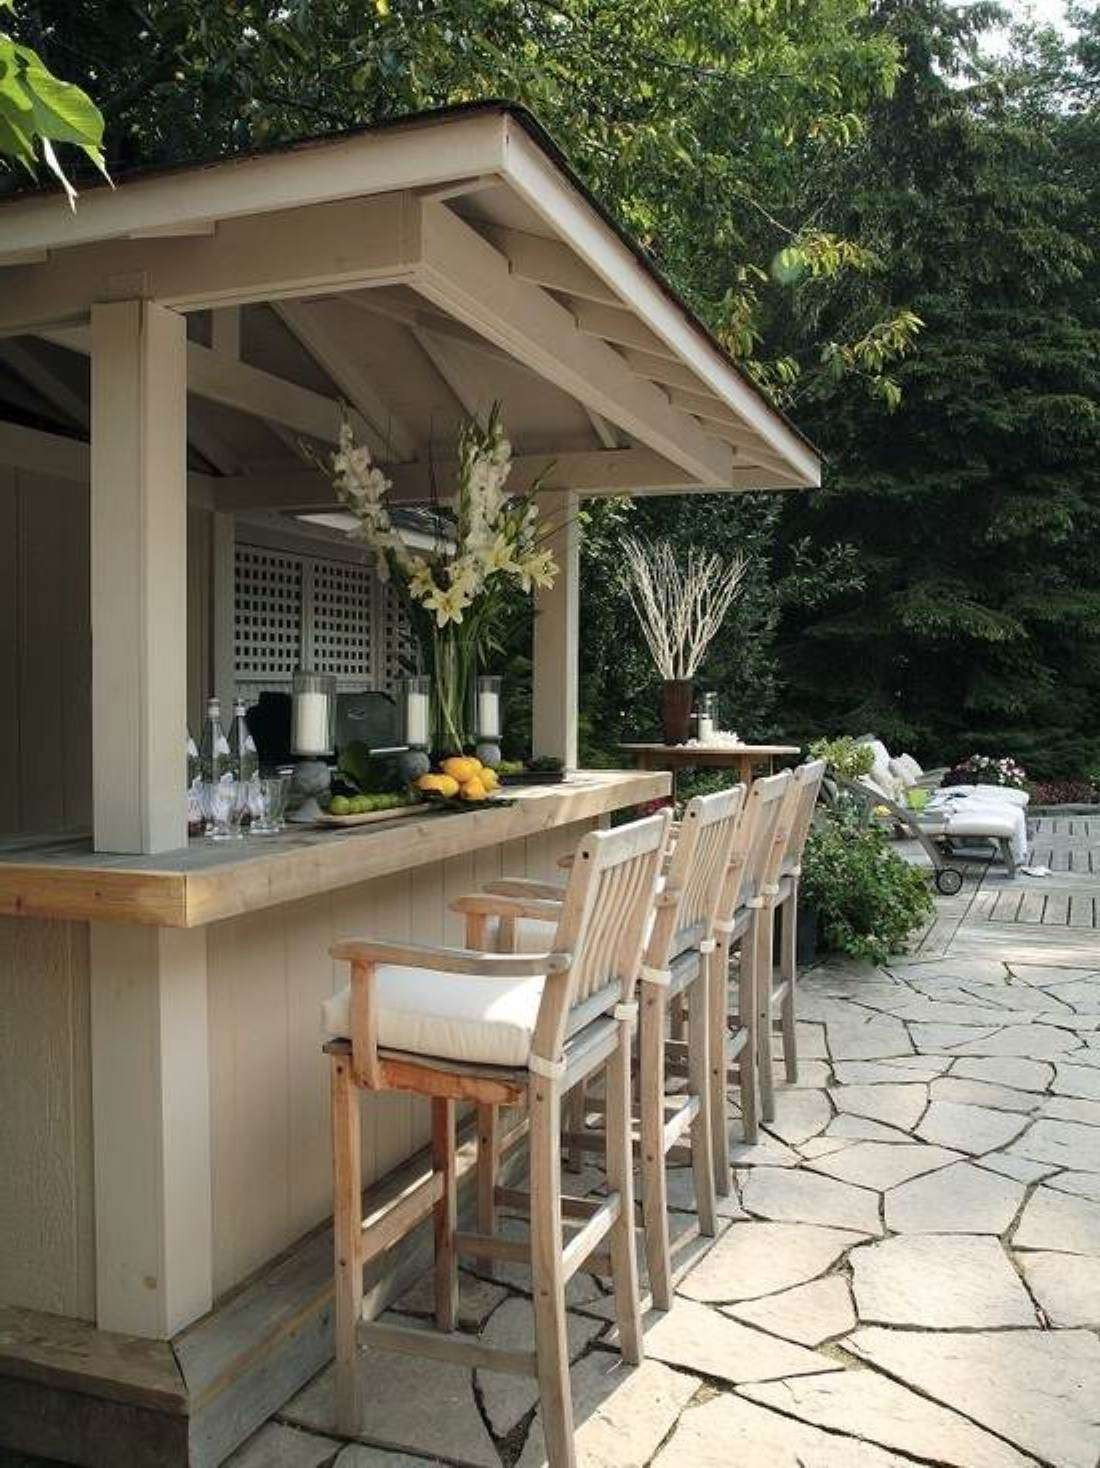 Best ideas about DIY Outdoor Bar Plans . Save or Pin DIY OUTDOOR BAR IDEAS 42 decoratoo Now.